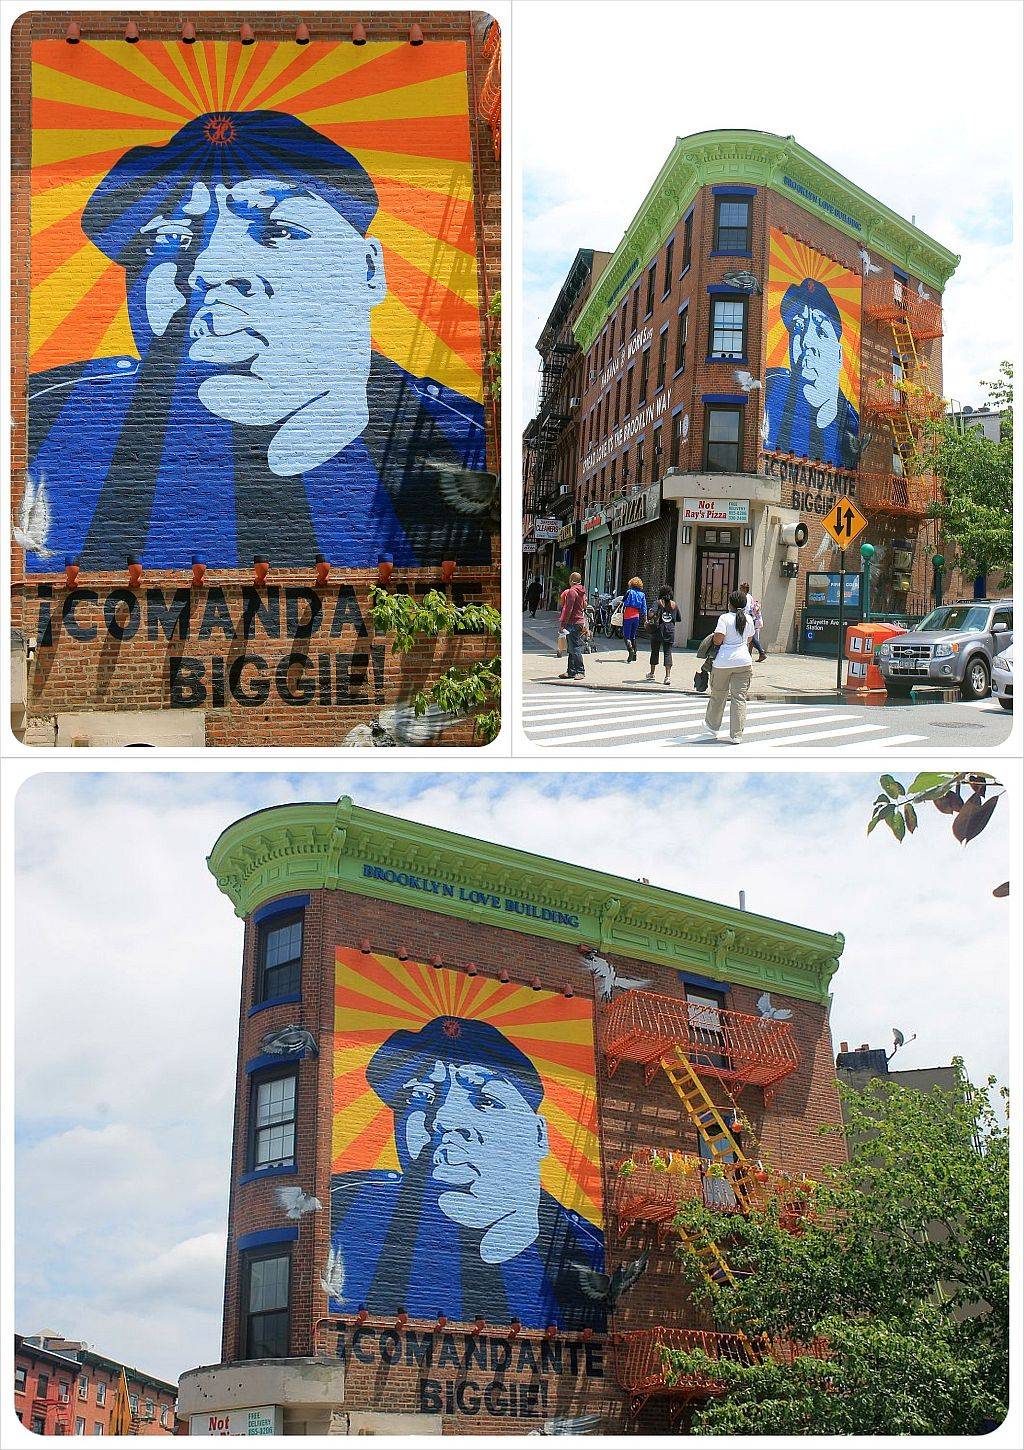 Biggie mural Brooklyn